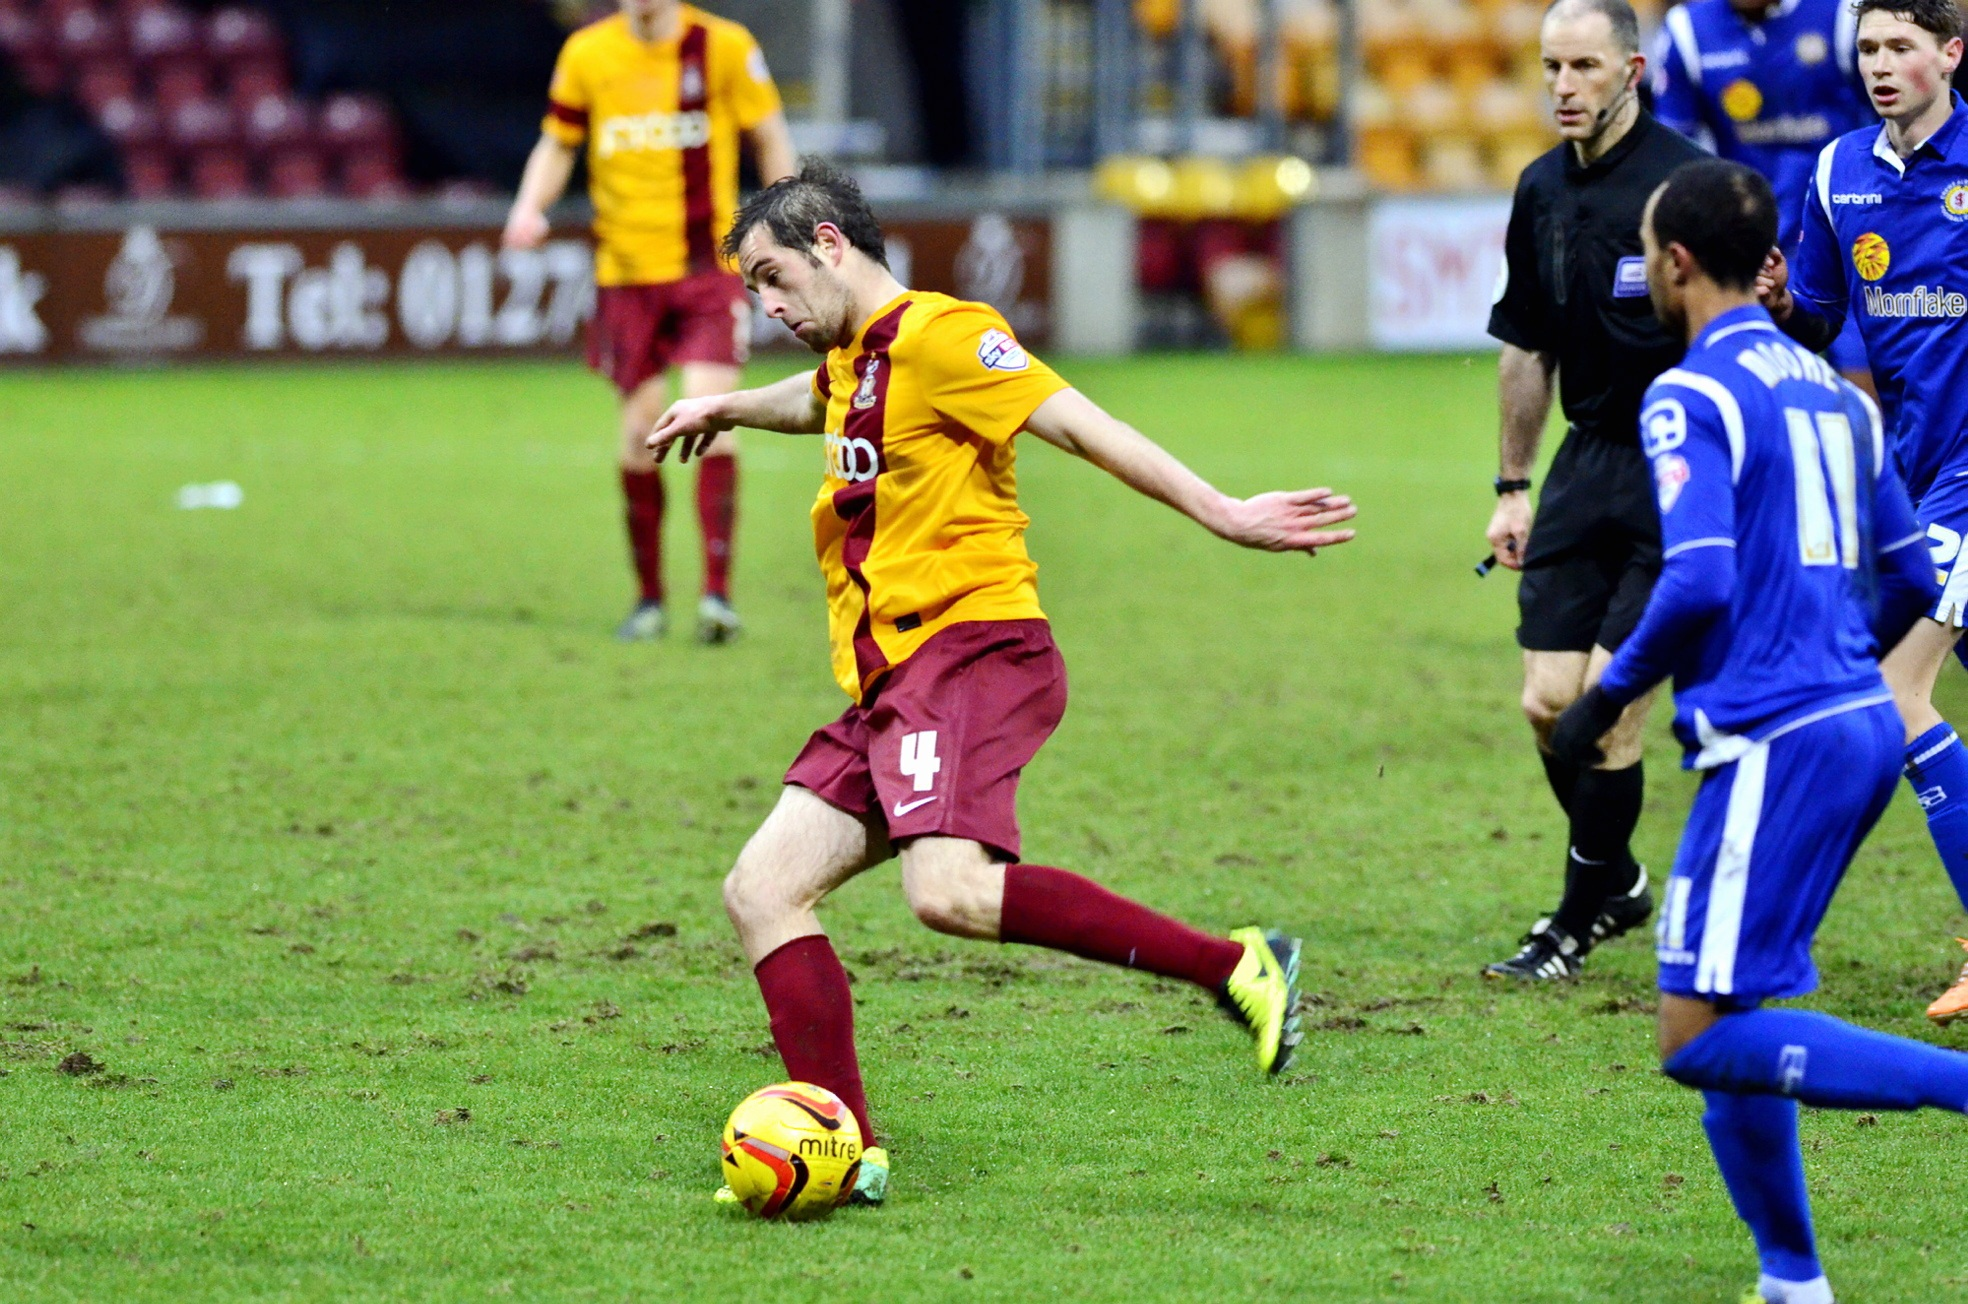 Matty Dolan in action on his City debut against Crewe